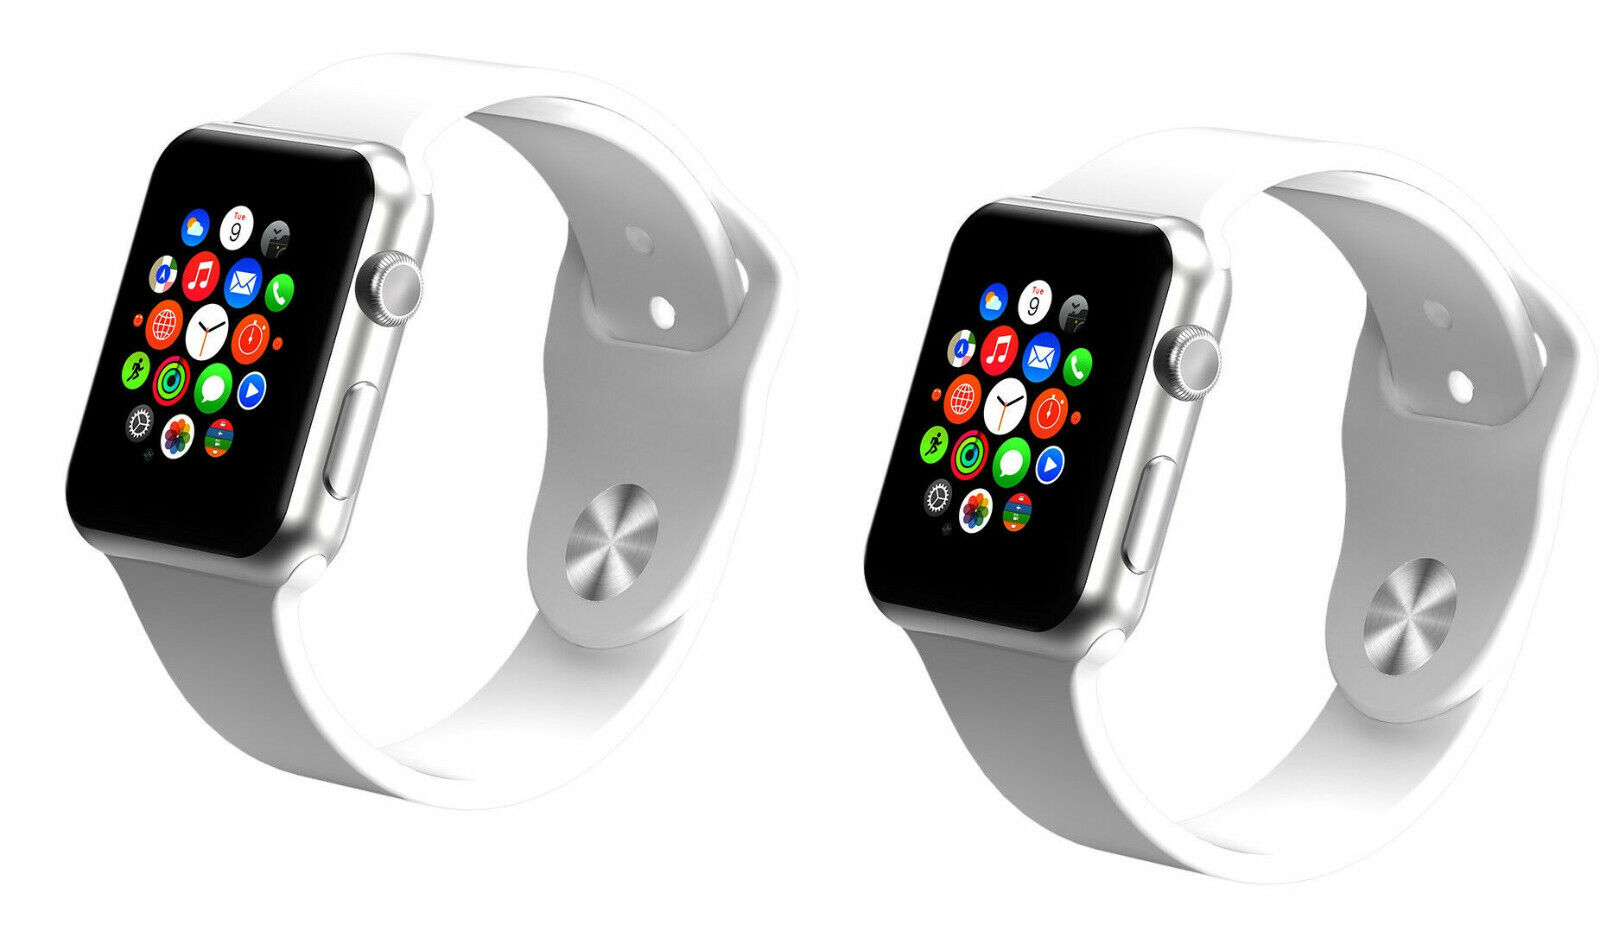 New 2 Pack White G10 Smart Wrist Watch Bluetooth Phone A1 Watches Cell Phones & Accessories